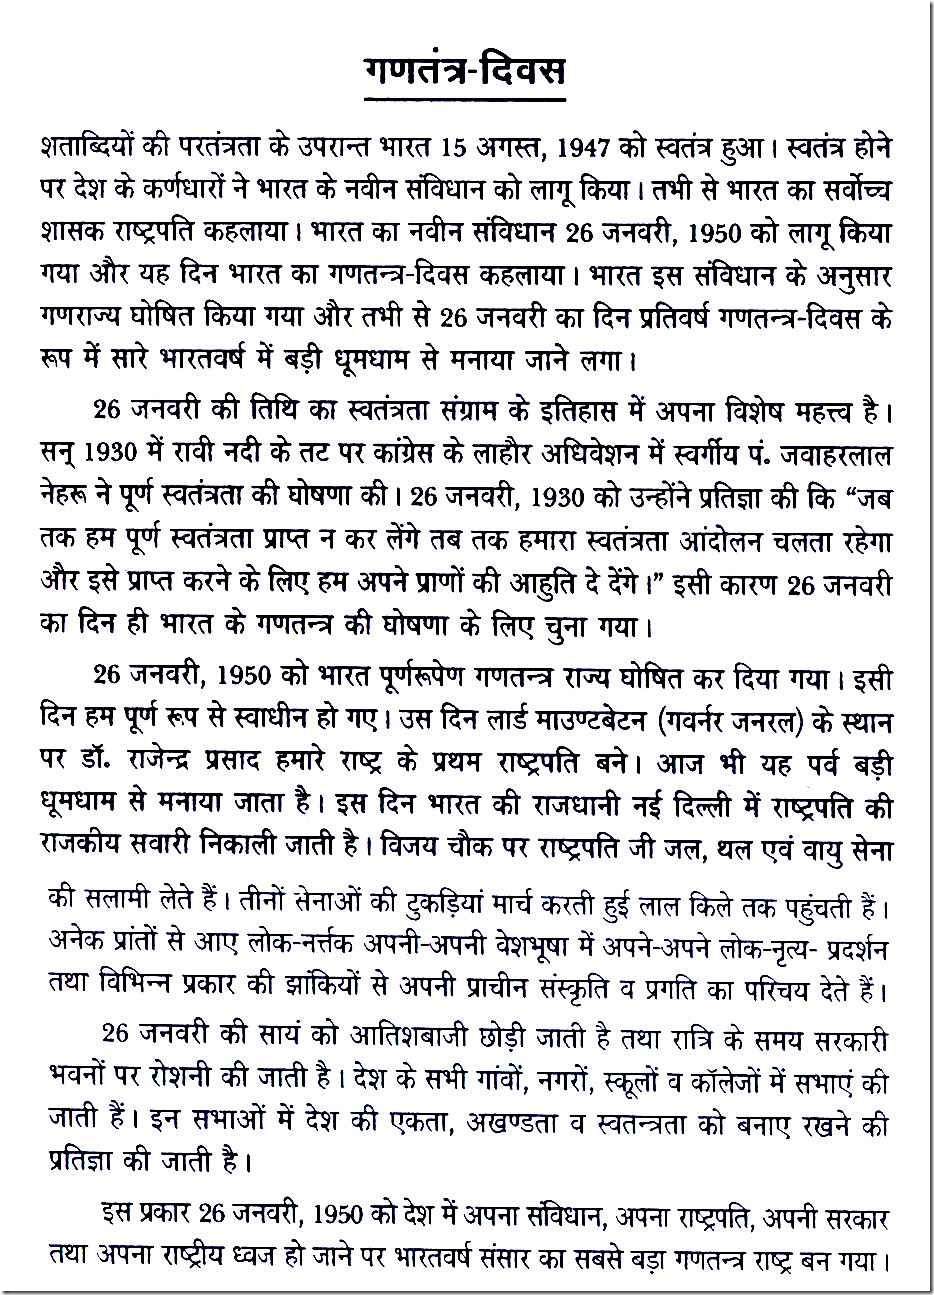 essay mahatma gandhi hindi biography of mahatma gandhi in hindi  english essay speech writing a basic essay cheap online service republic day speech in hindi punjabi